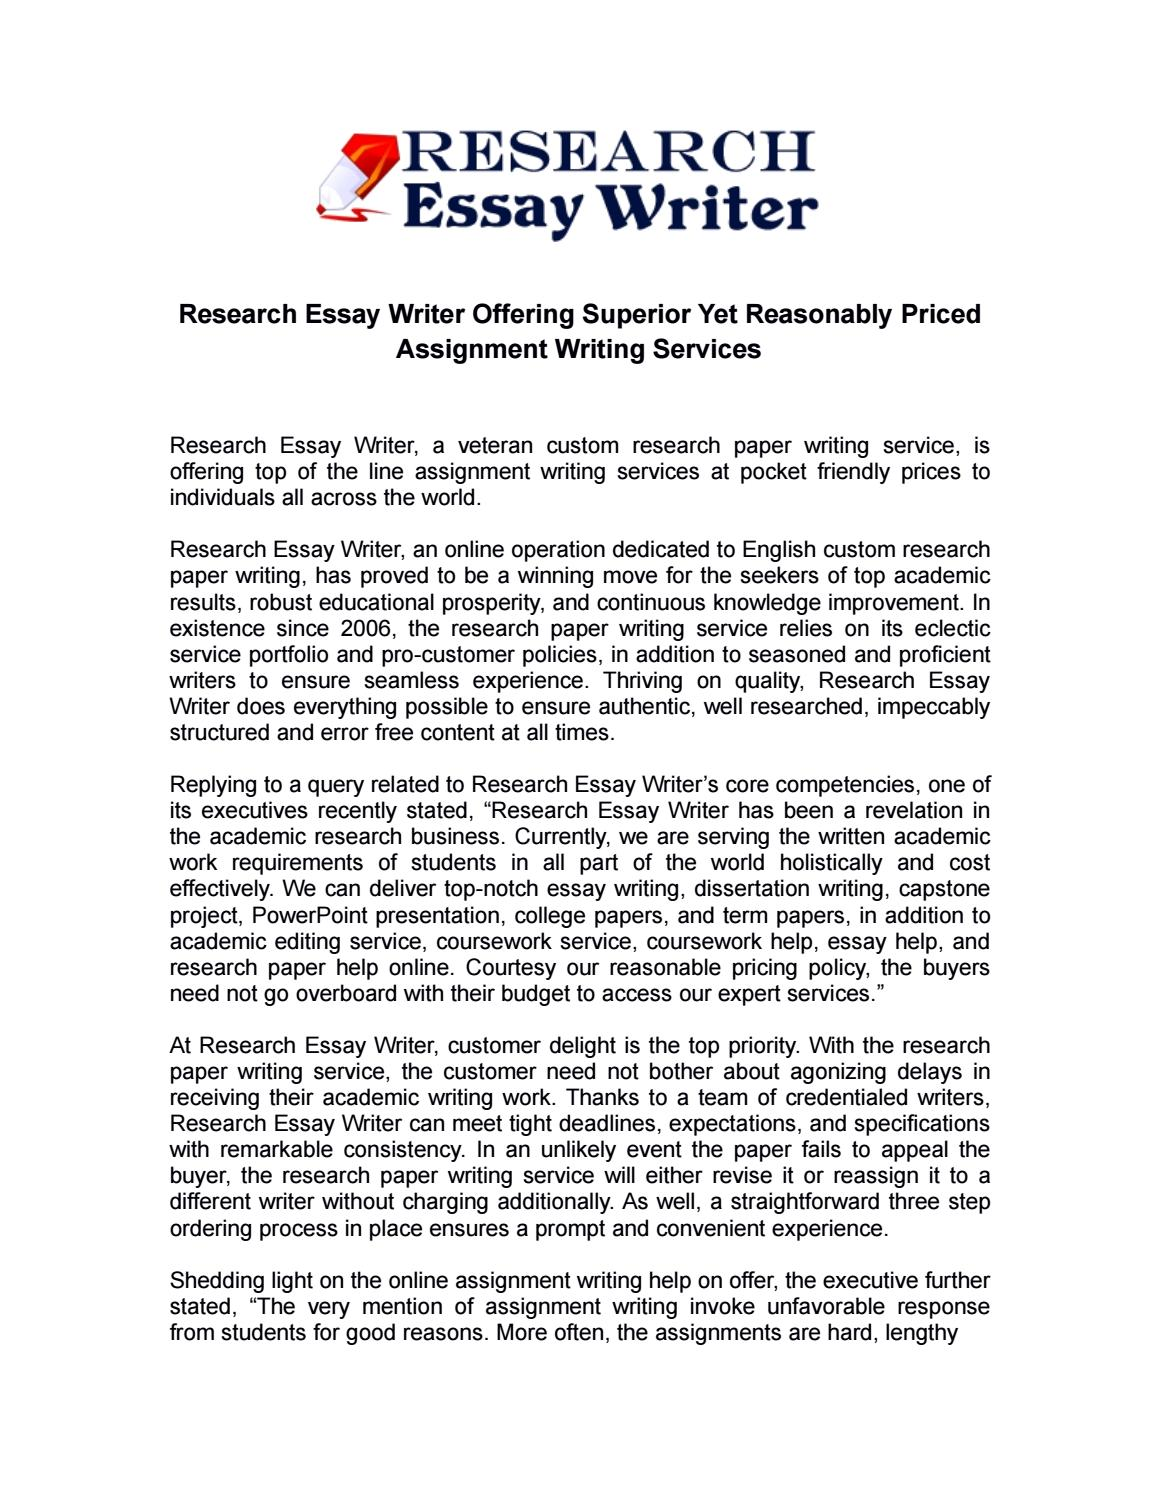 020 Custom Research Paper Writing Service Page 1 Awesome Term Services Full